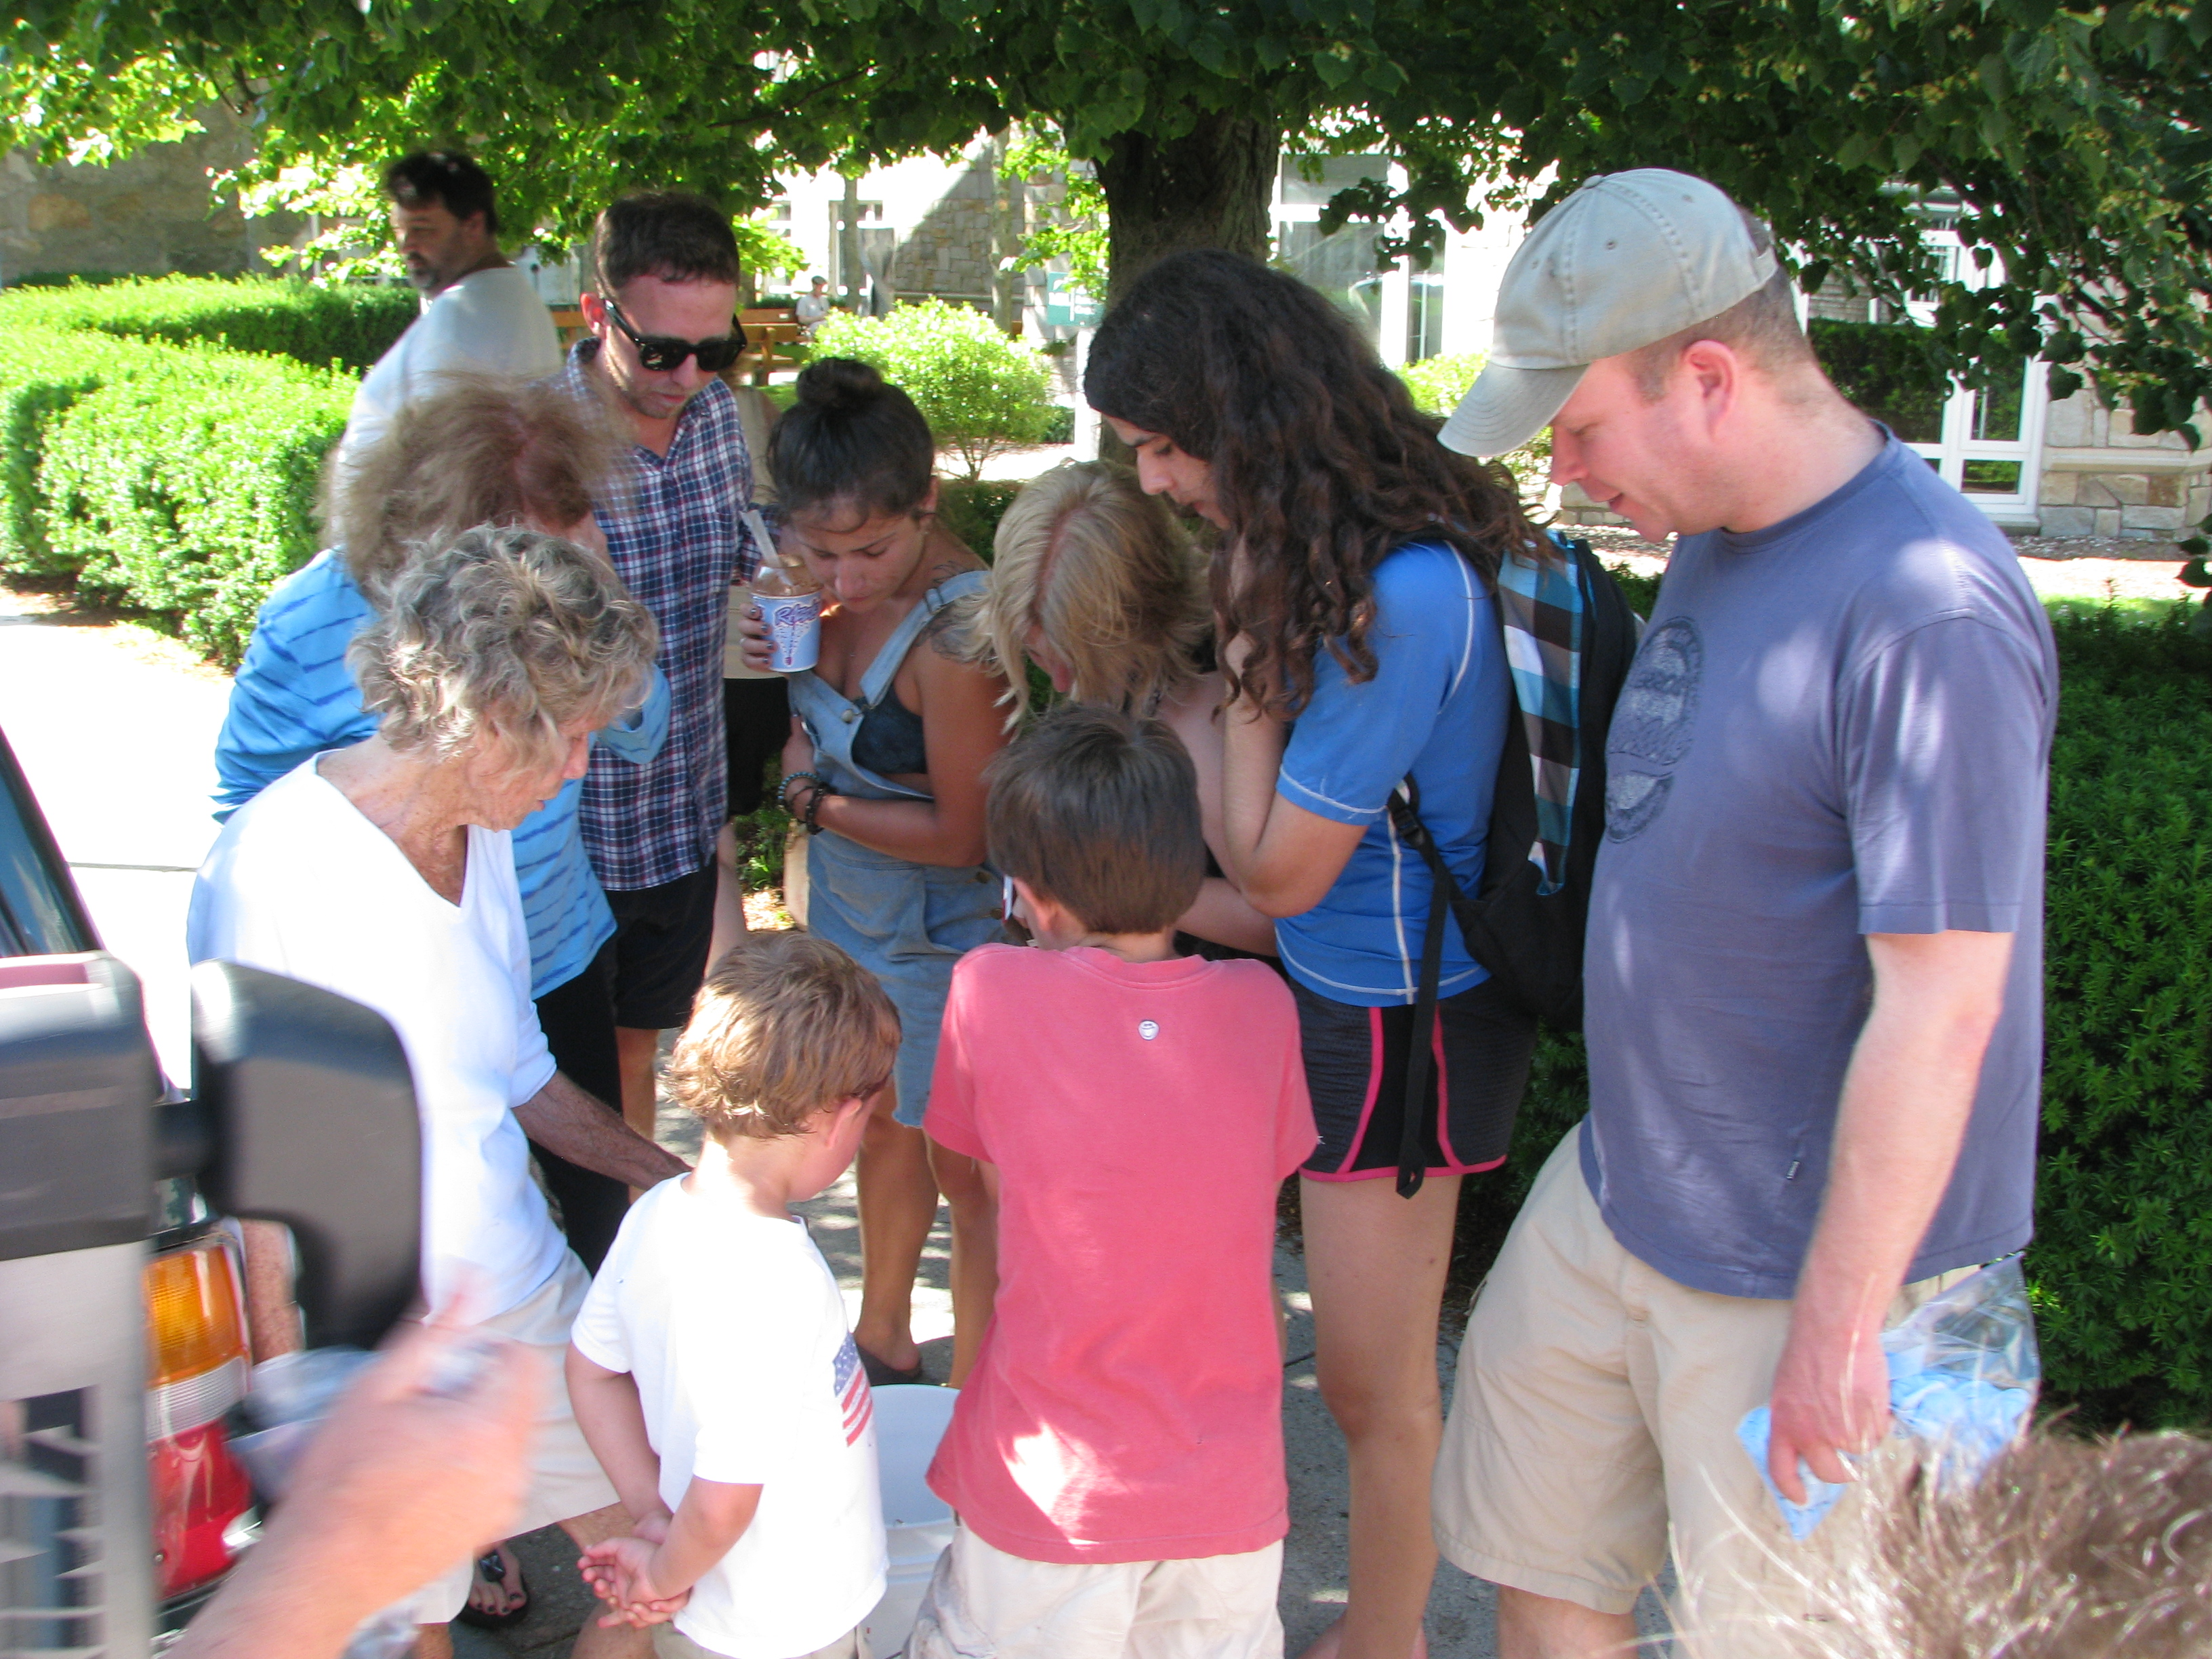 Our man-o-war-in-a-bucket generated a great deal of curiosity. Great opportunity for some impromptu science jamming!